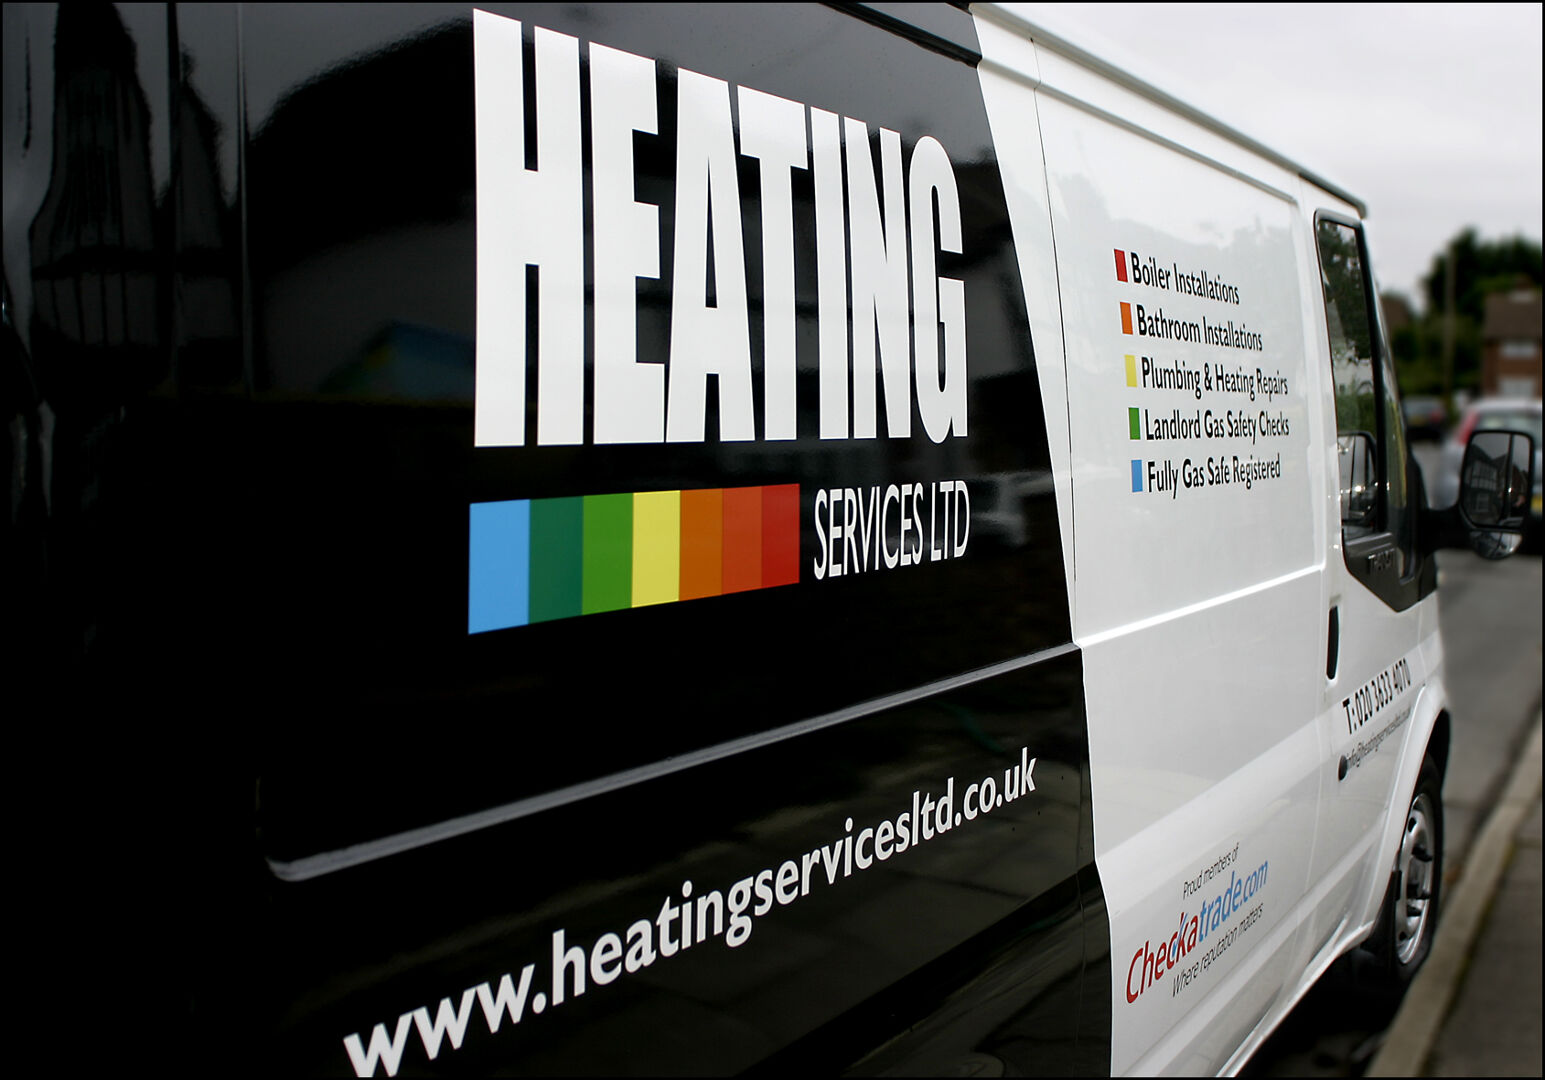 Plumbers Boiler Installation Service and Repairs and Bathroom Design and Installation by Heating Services Ltd in Bromley (1)